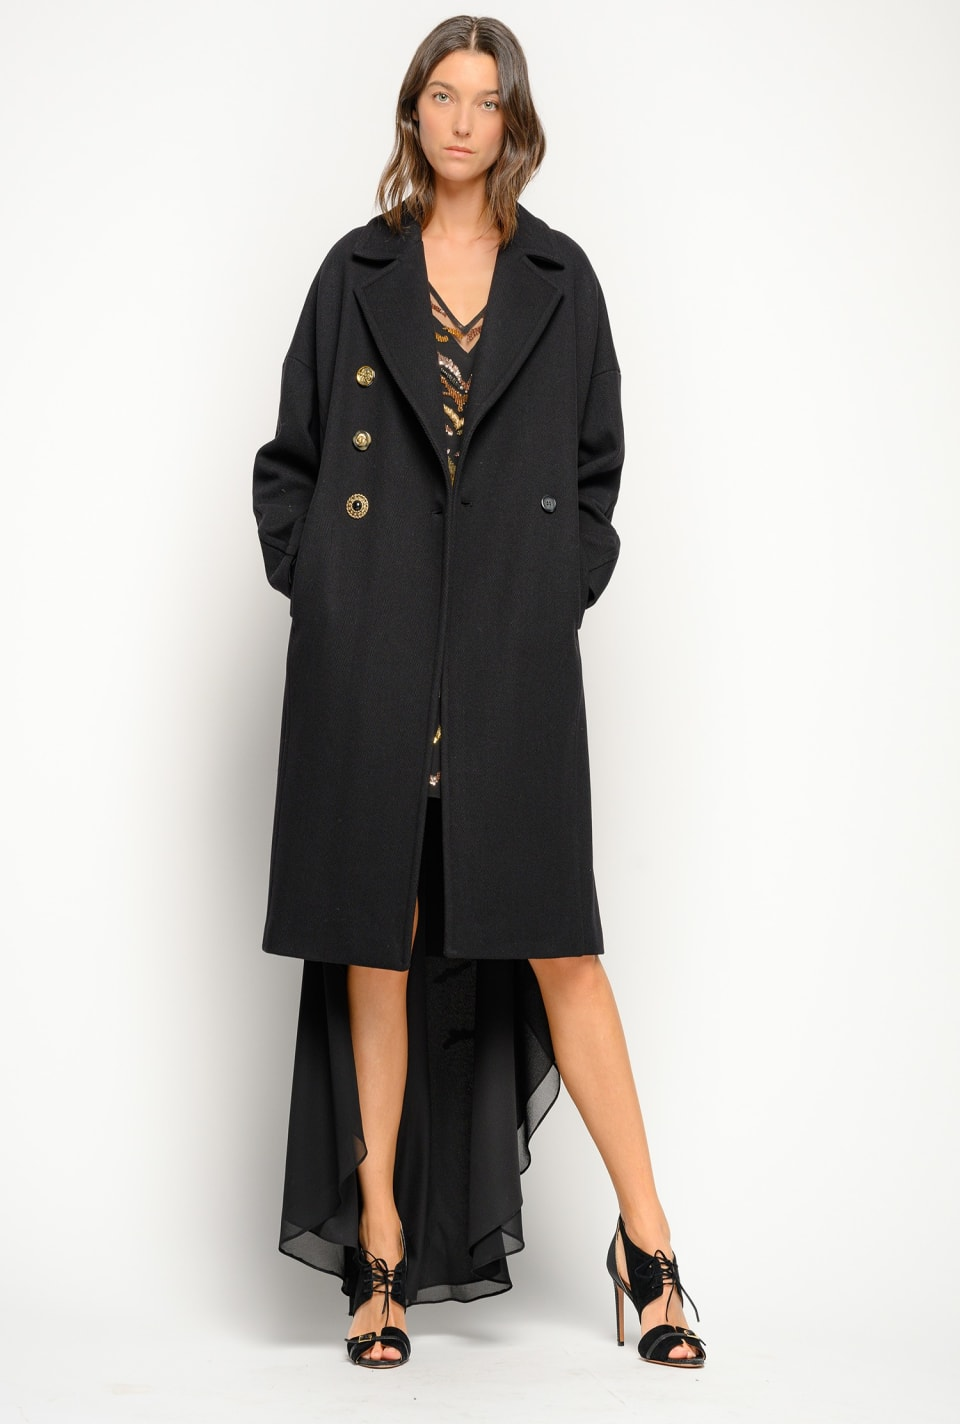 Chevron Melton pea coat - Pinko